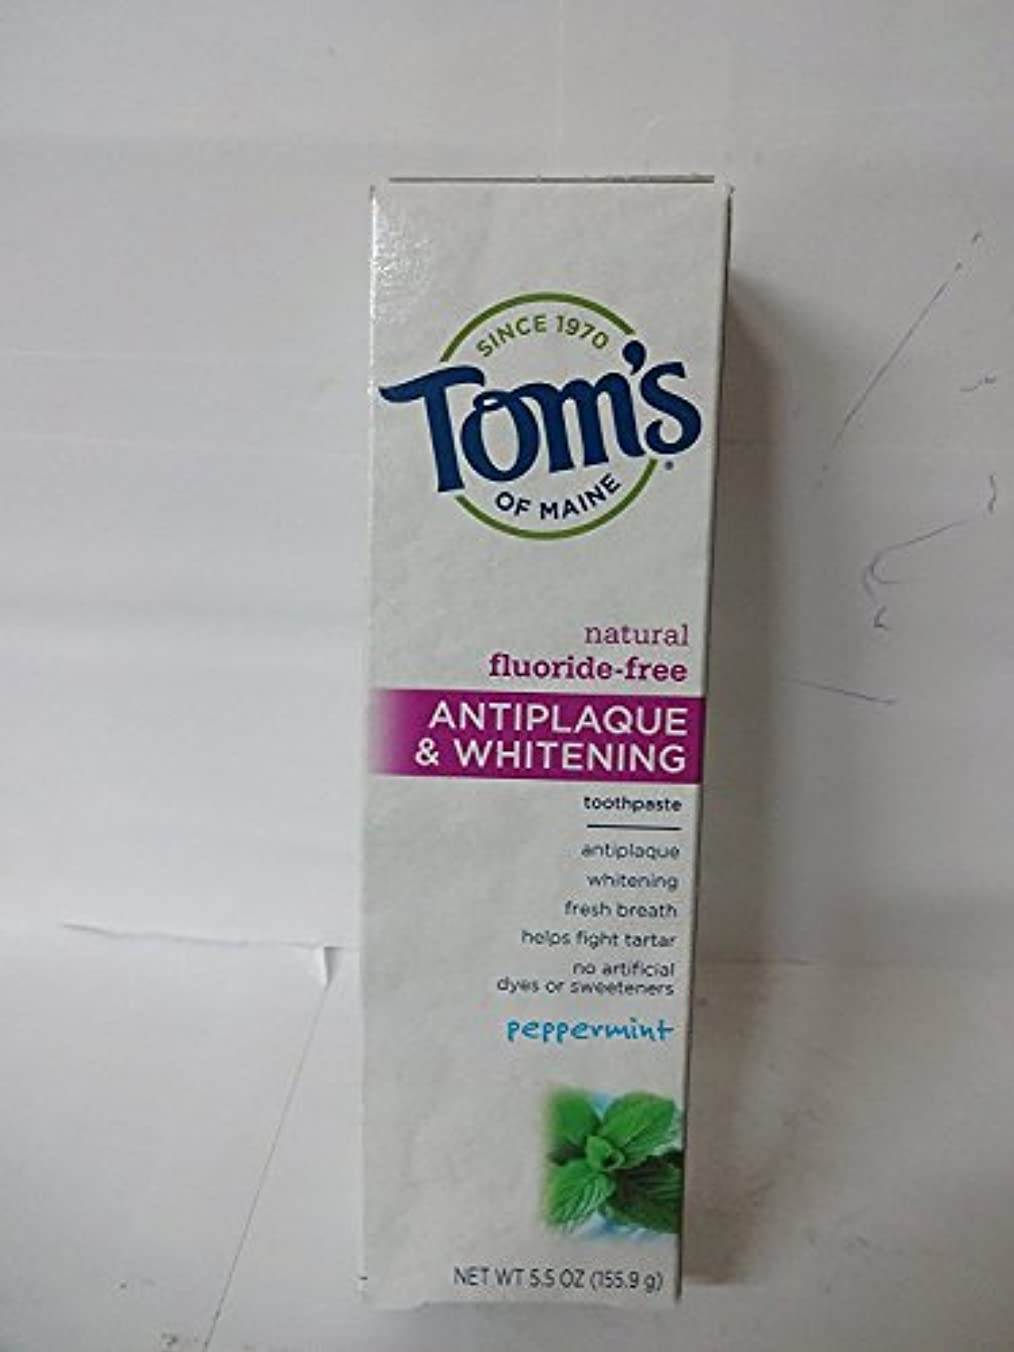 Antiplaque and Whitening Toothpaste 5.5